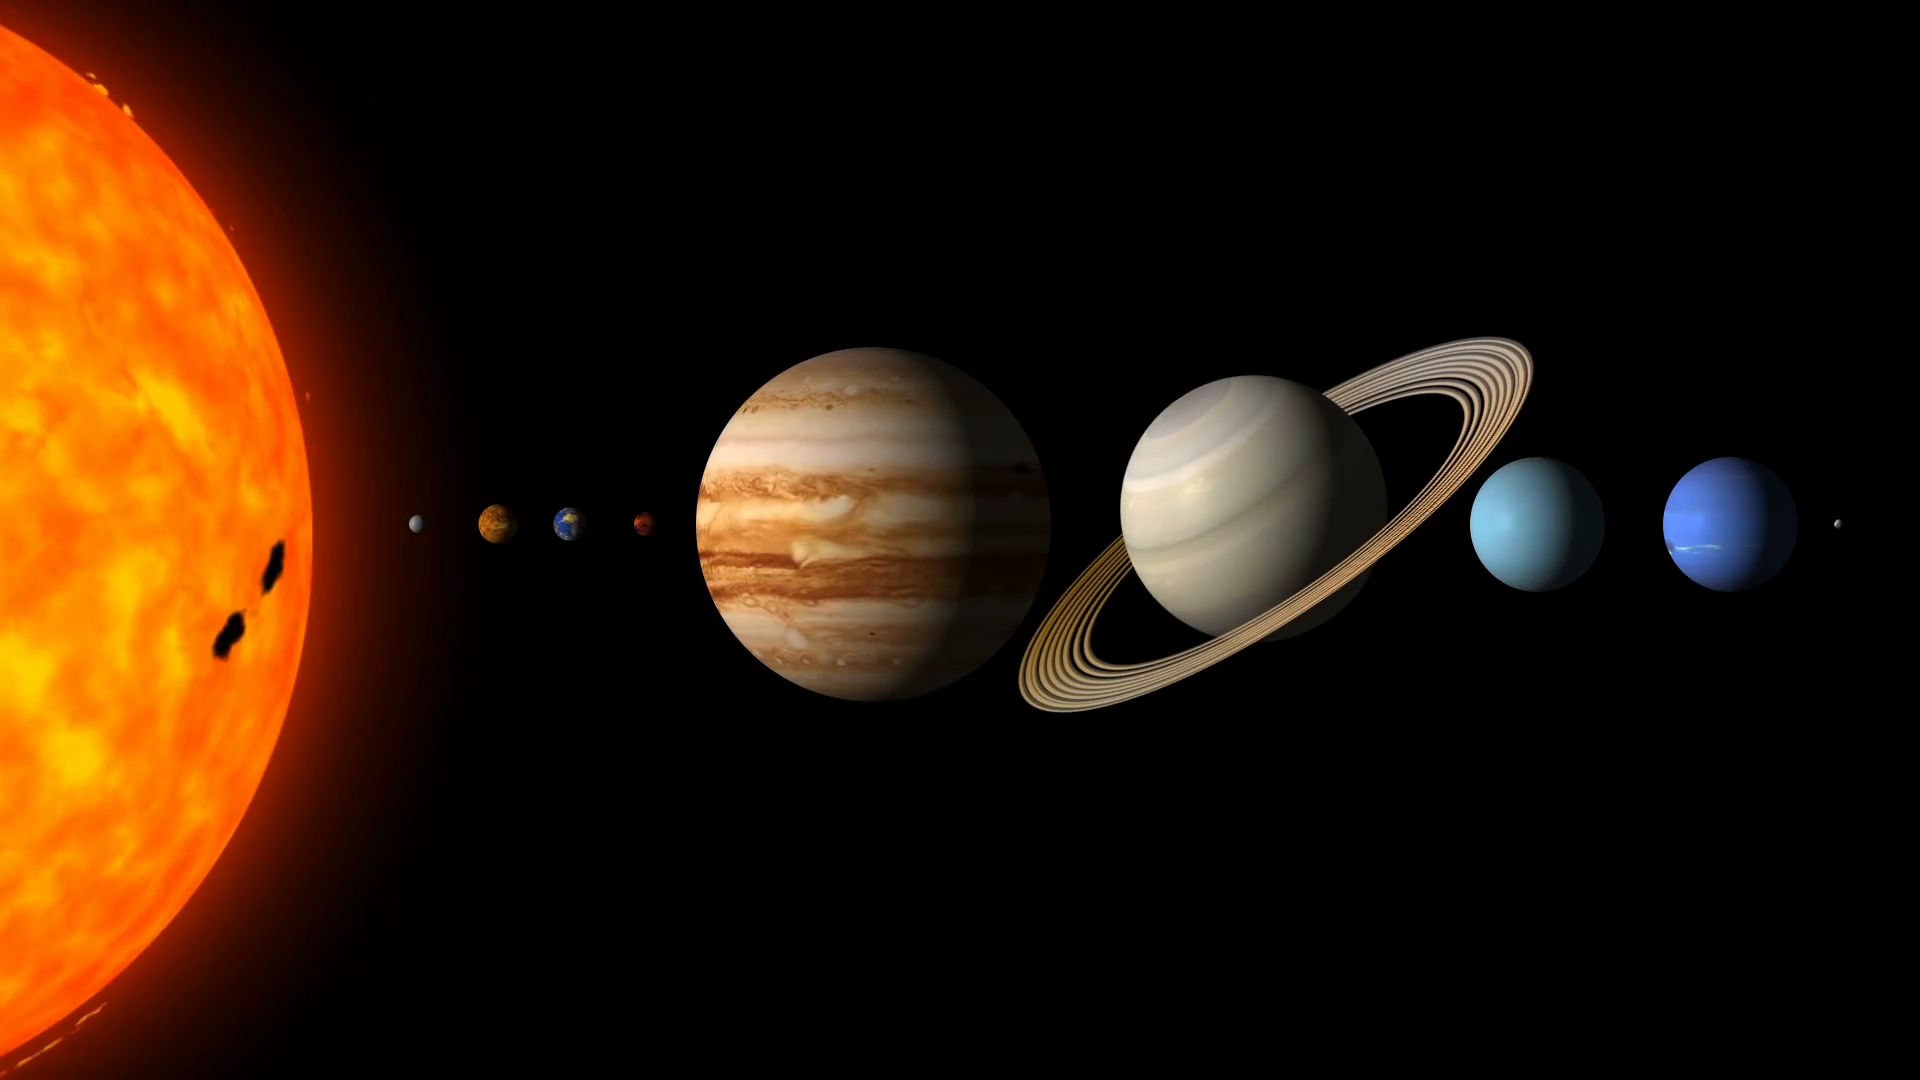 The Planets Of The Solar System By Order Motion Background - VideoBlocks - Solar System PNG HD